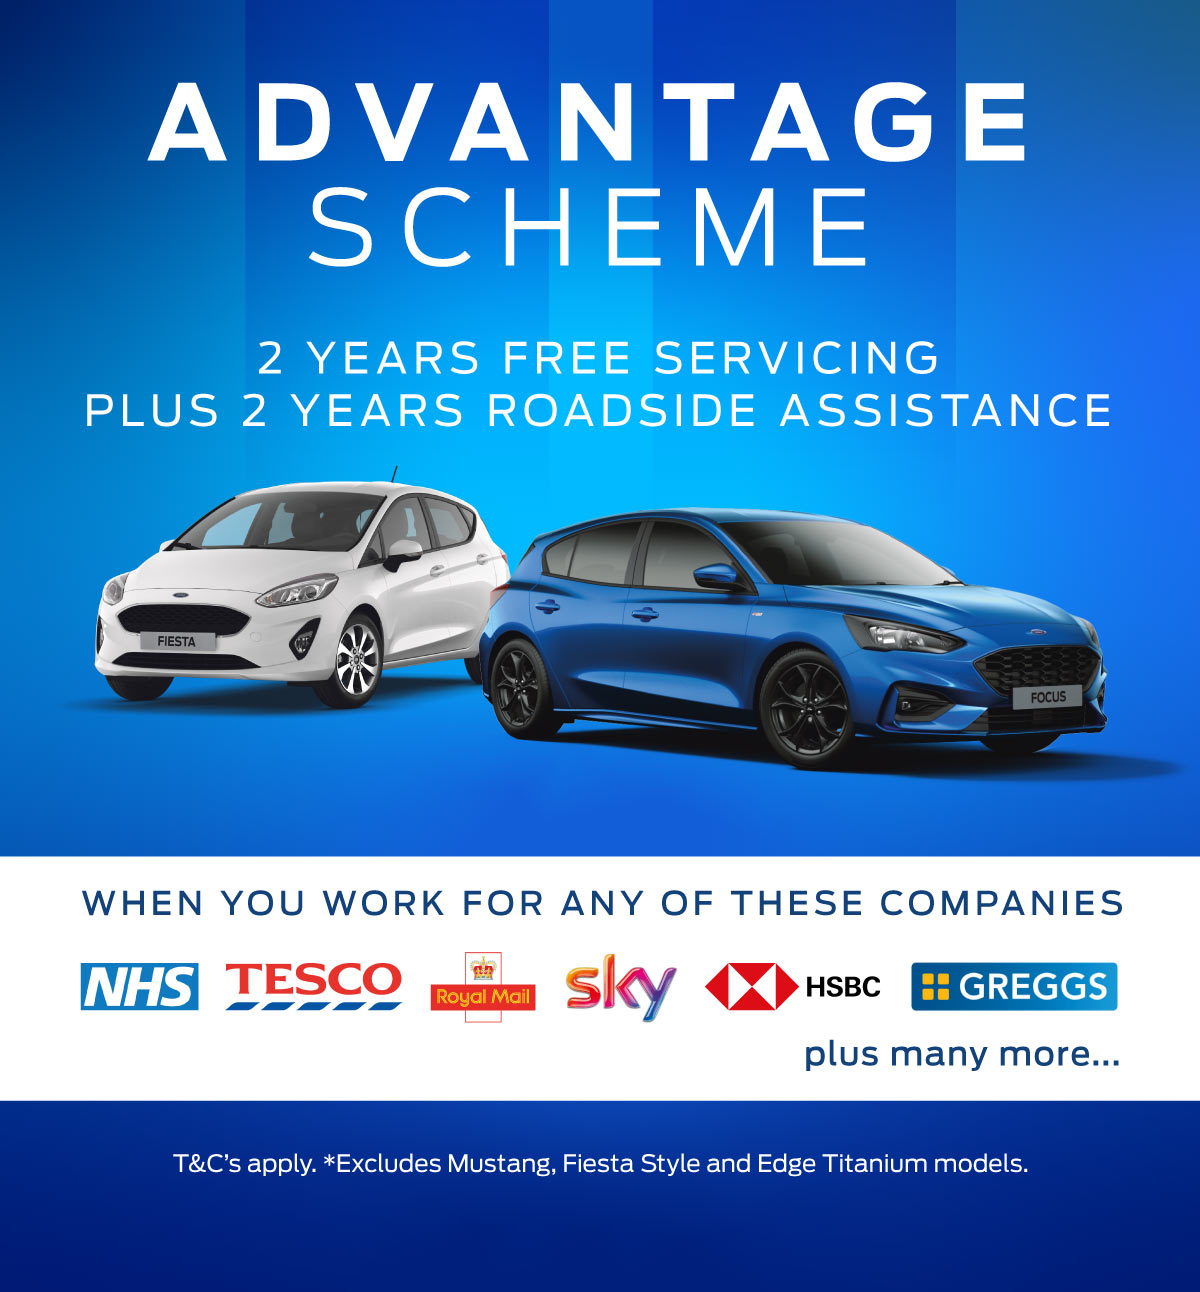 [Ford Generic] Ford Advantage Scheme 240919 Banner 1